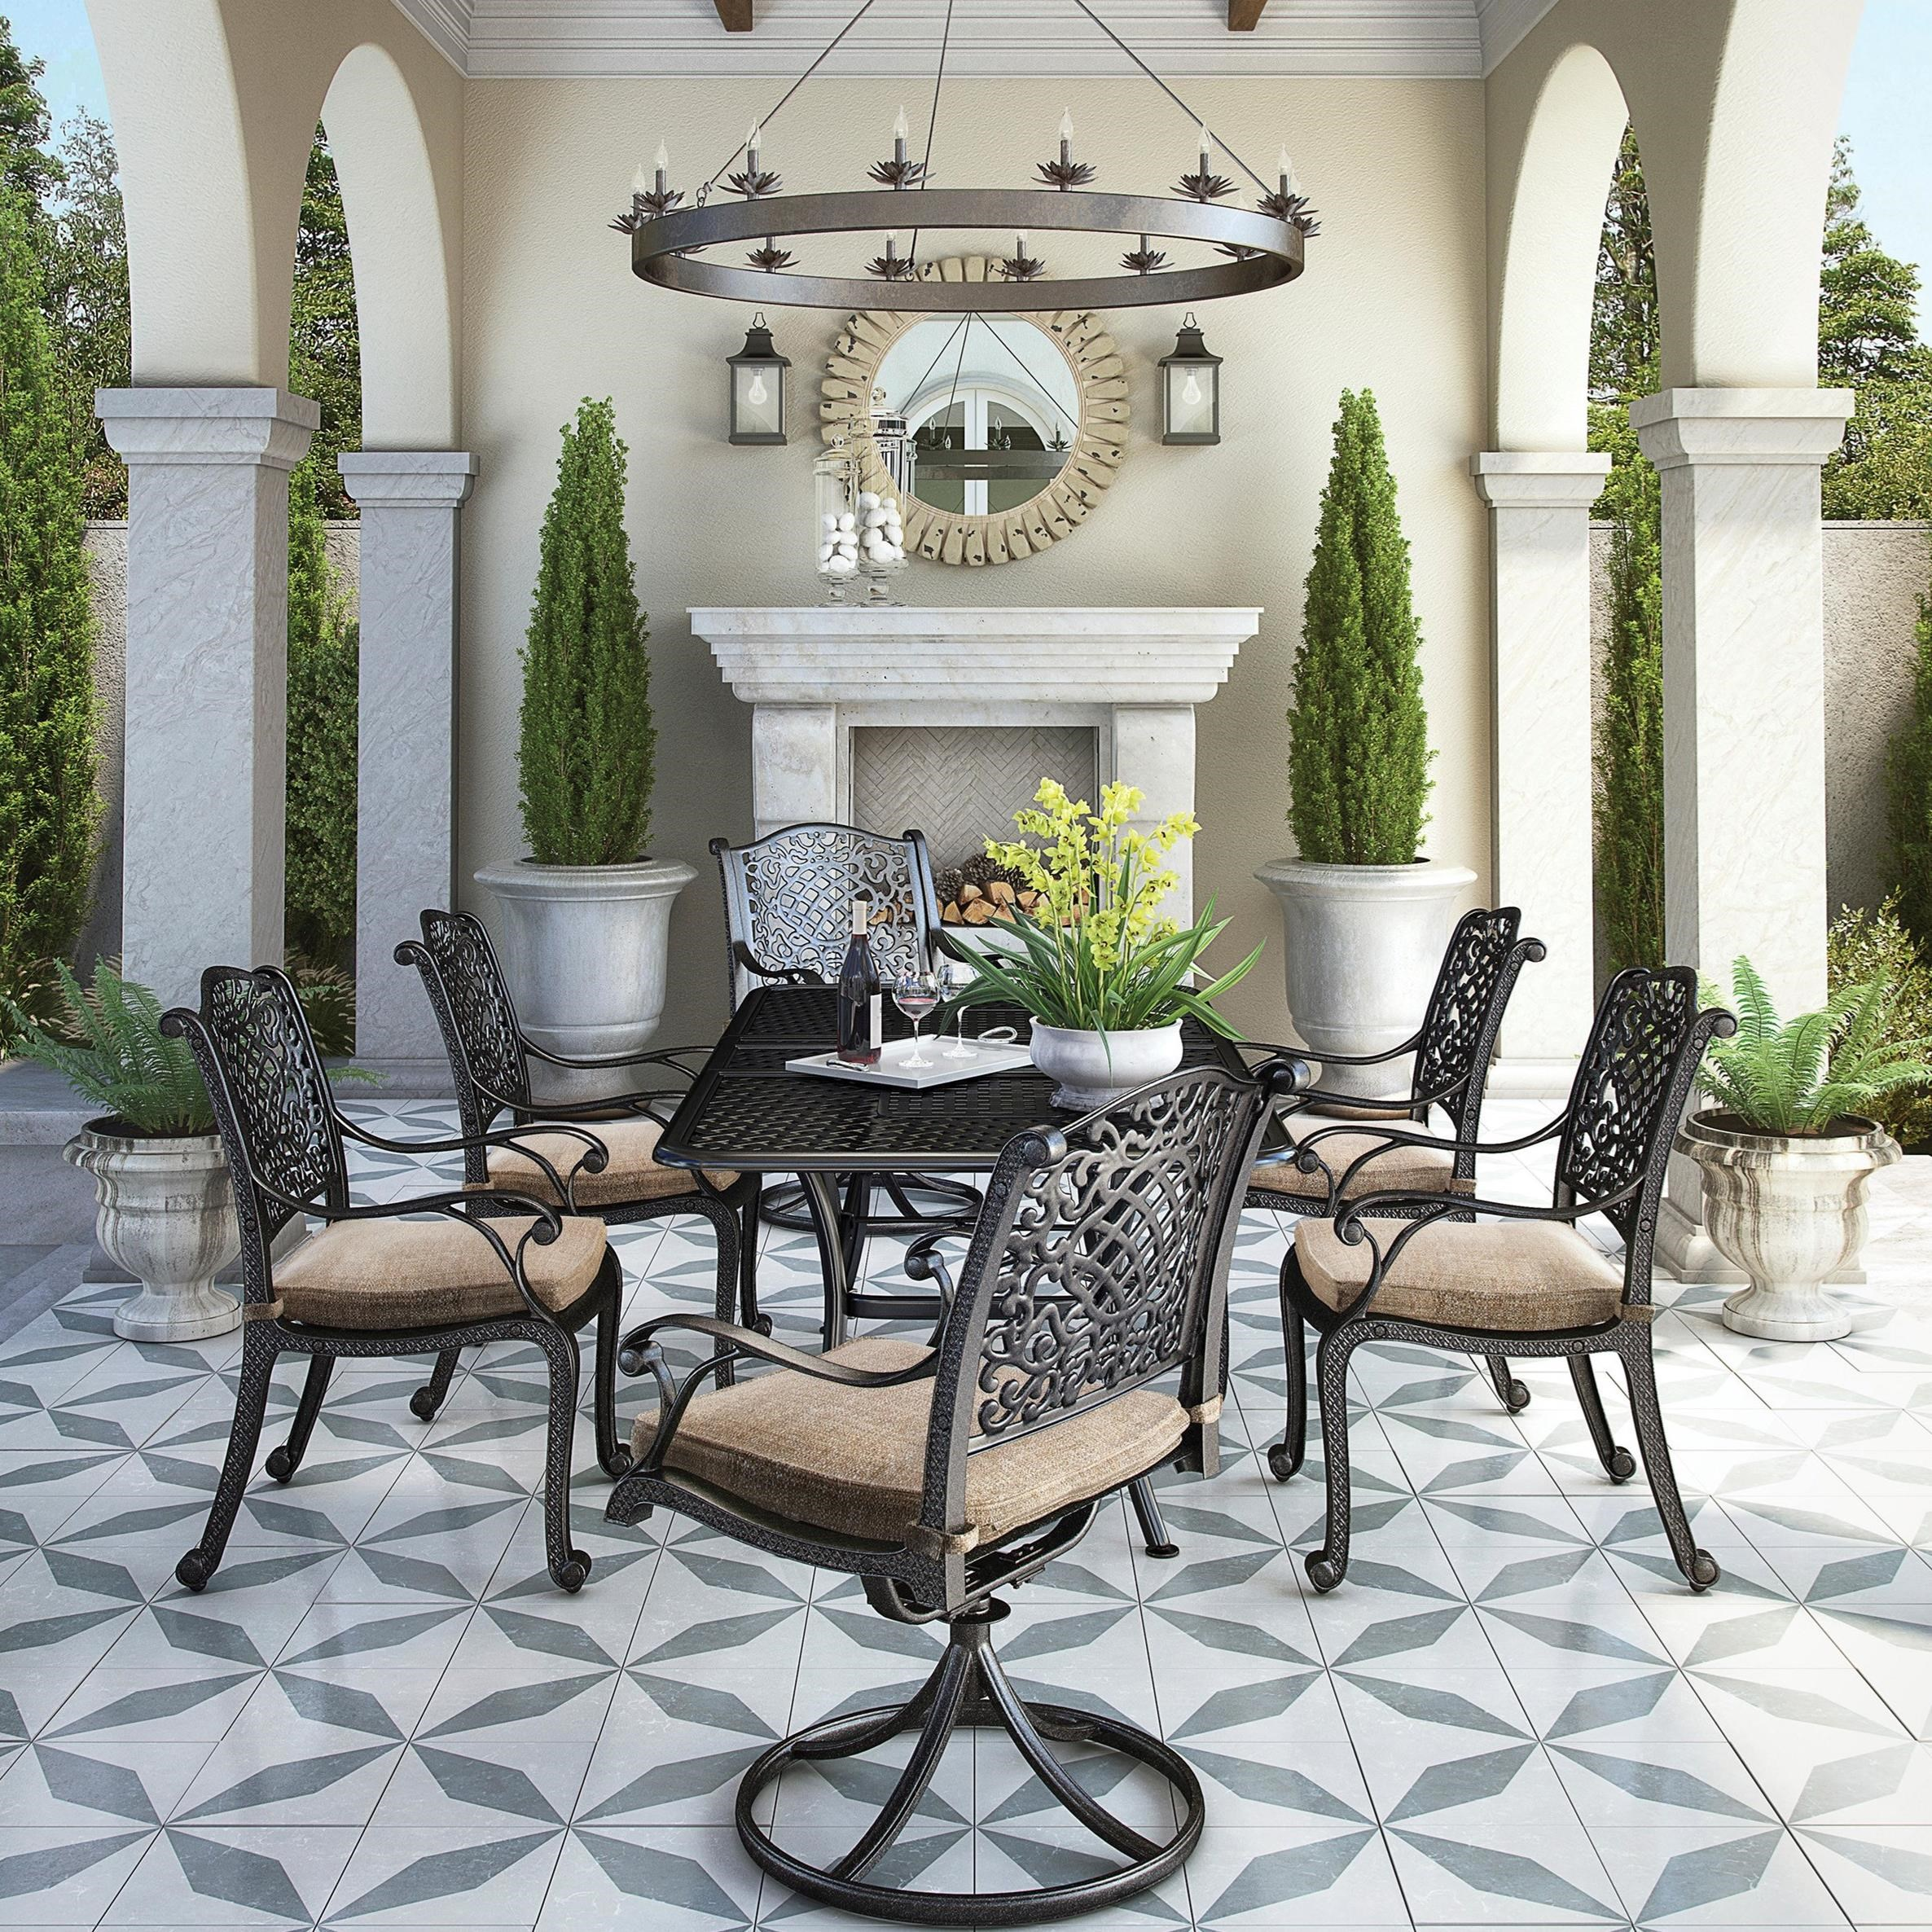 Tanglevale 7 Piece Outdoor Dining Set by Signature Design by Ashley at Lapeer Furniture & Mattress Center